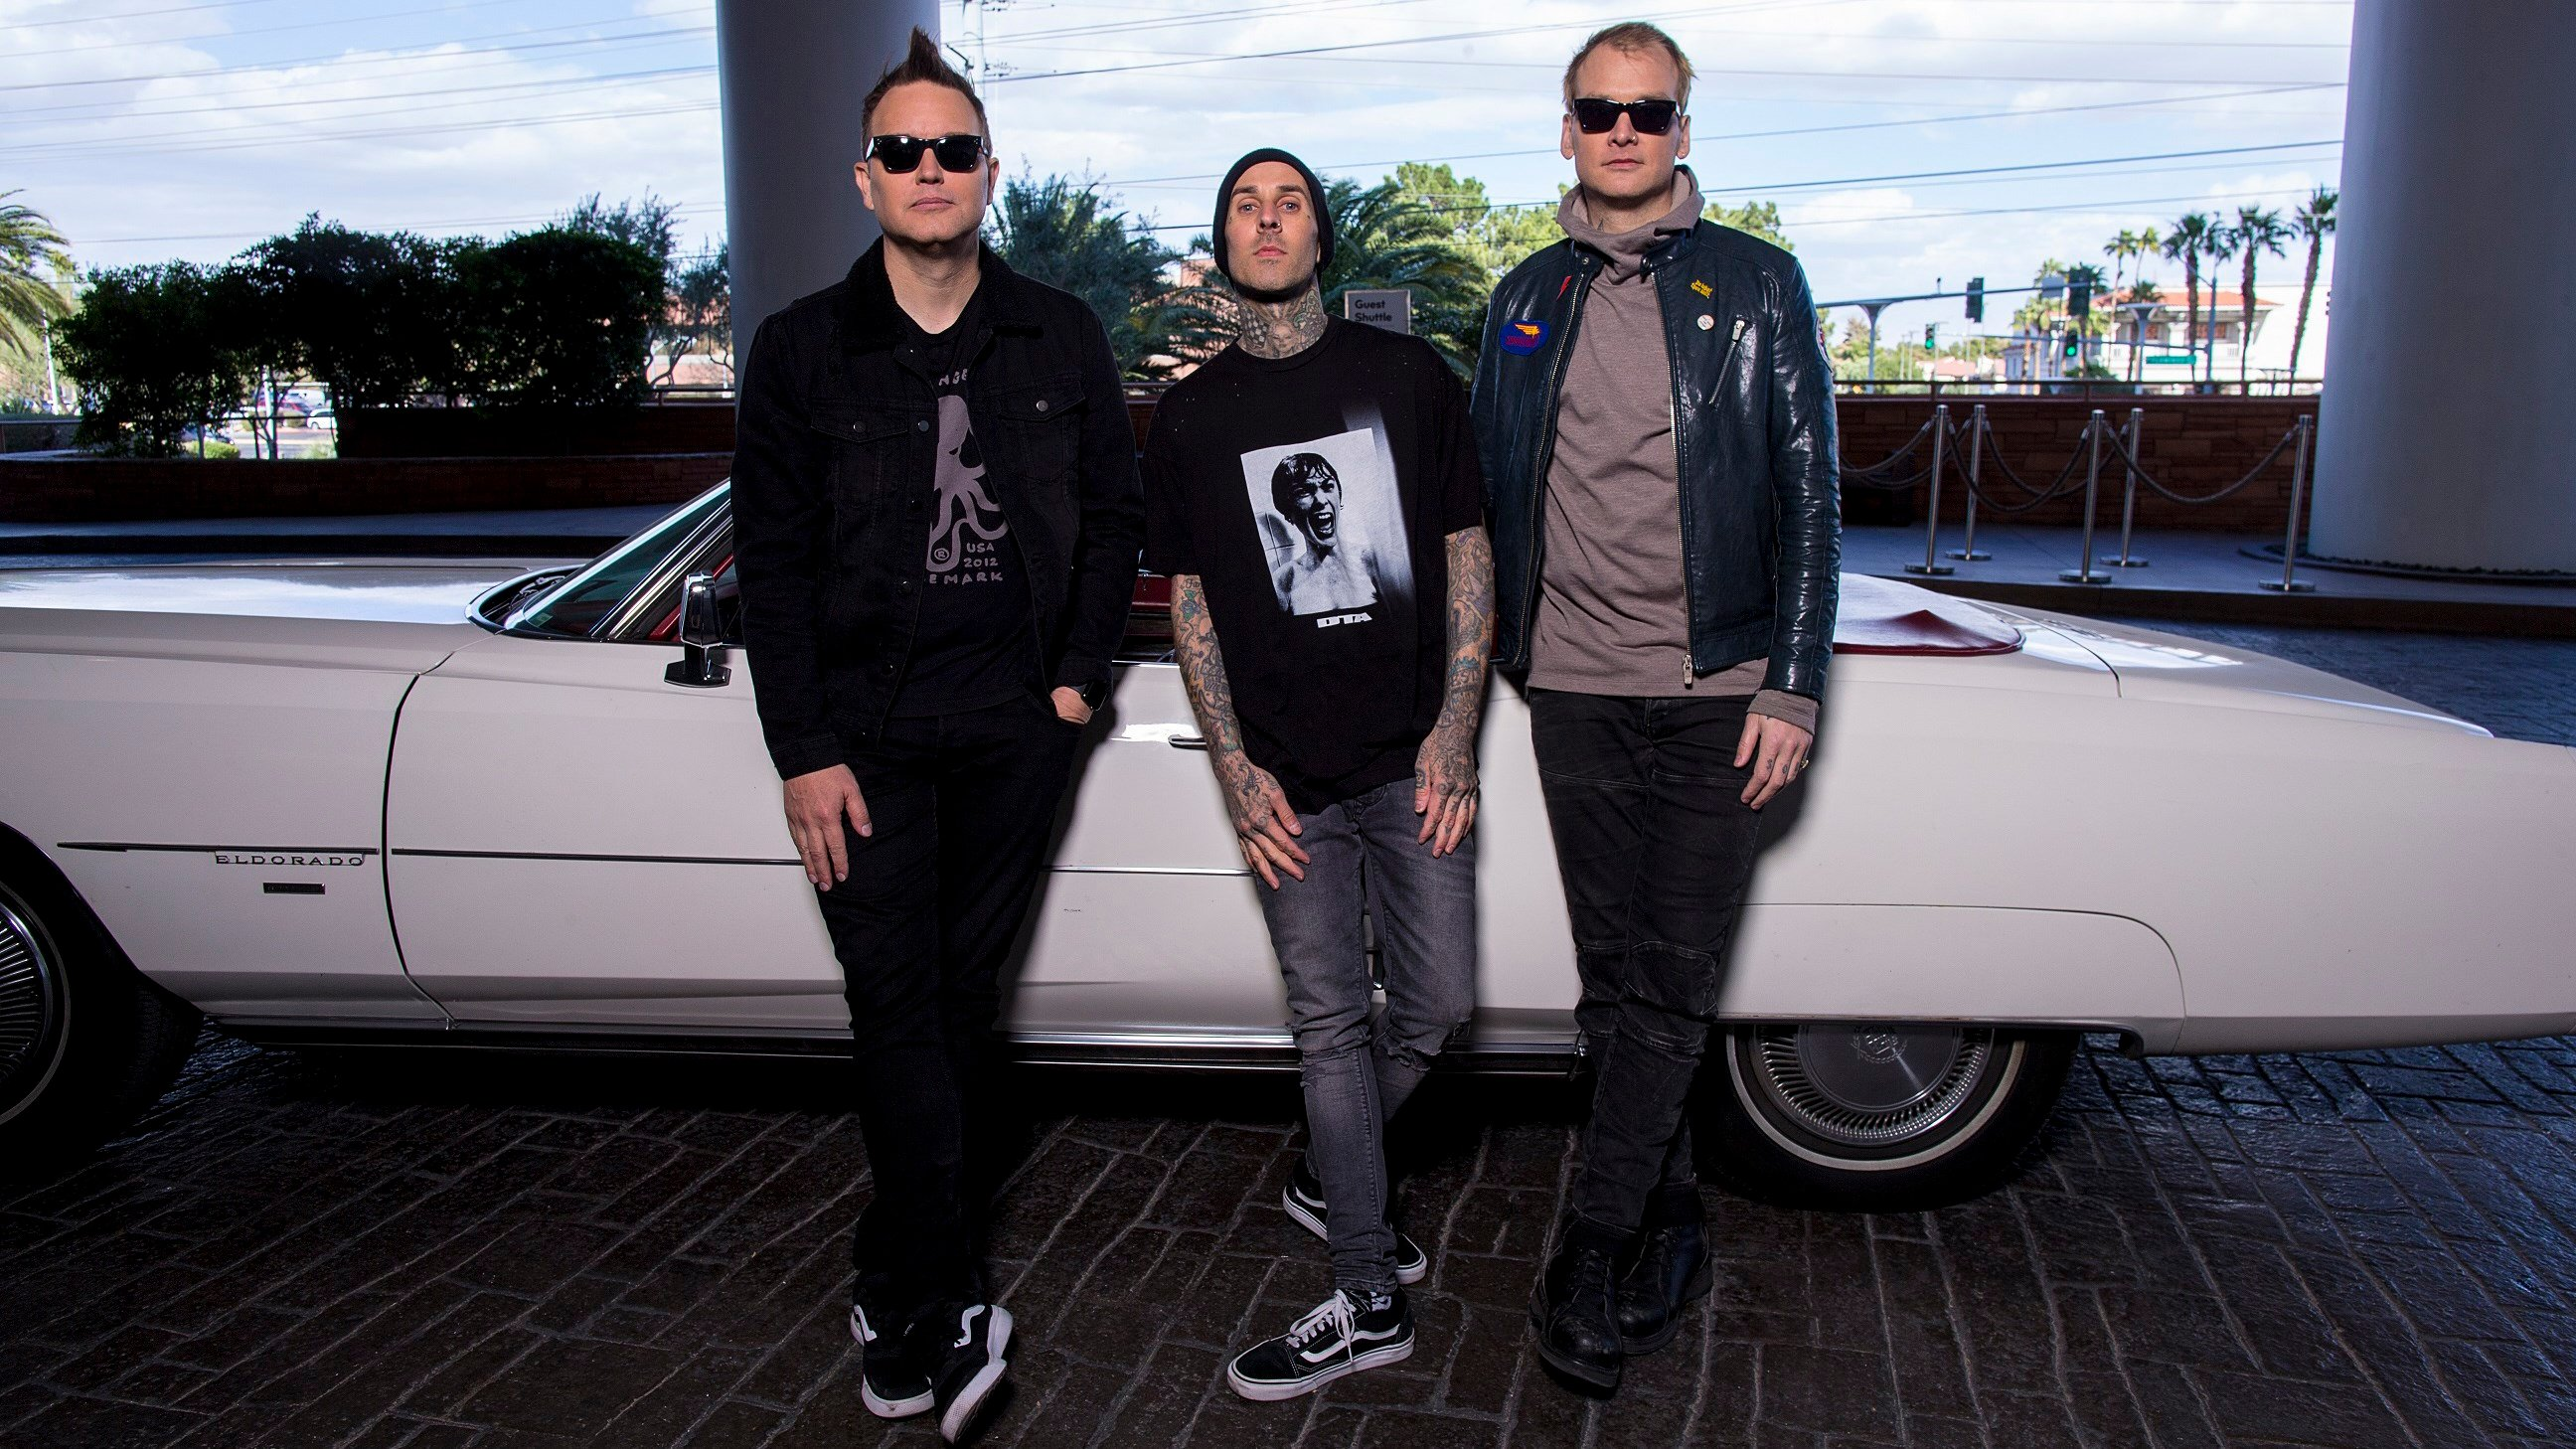 Blink-182 at The Palms Caisno Resort (Photo credit Willie T.)